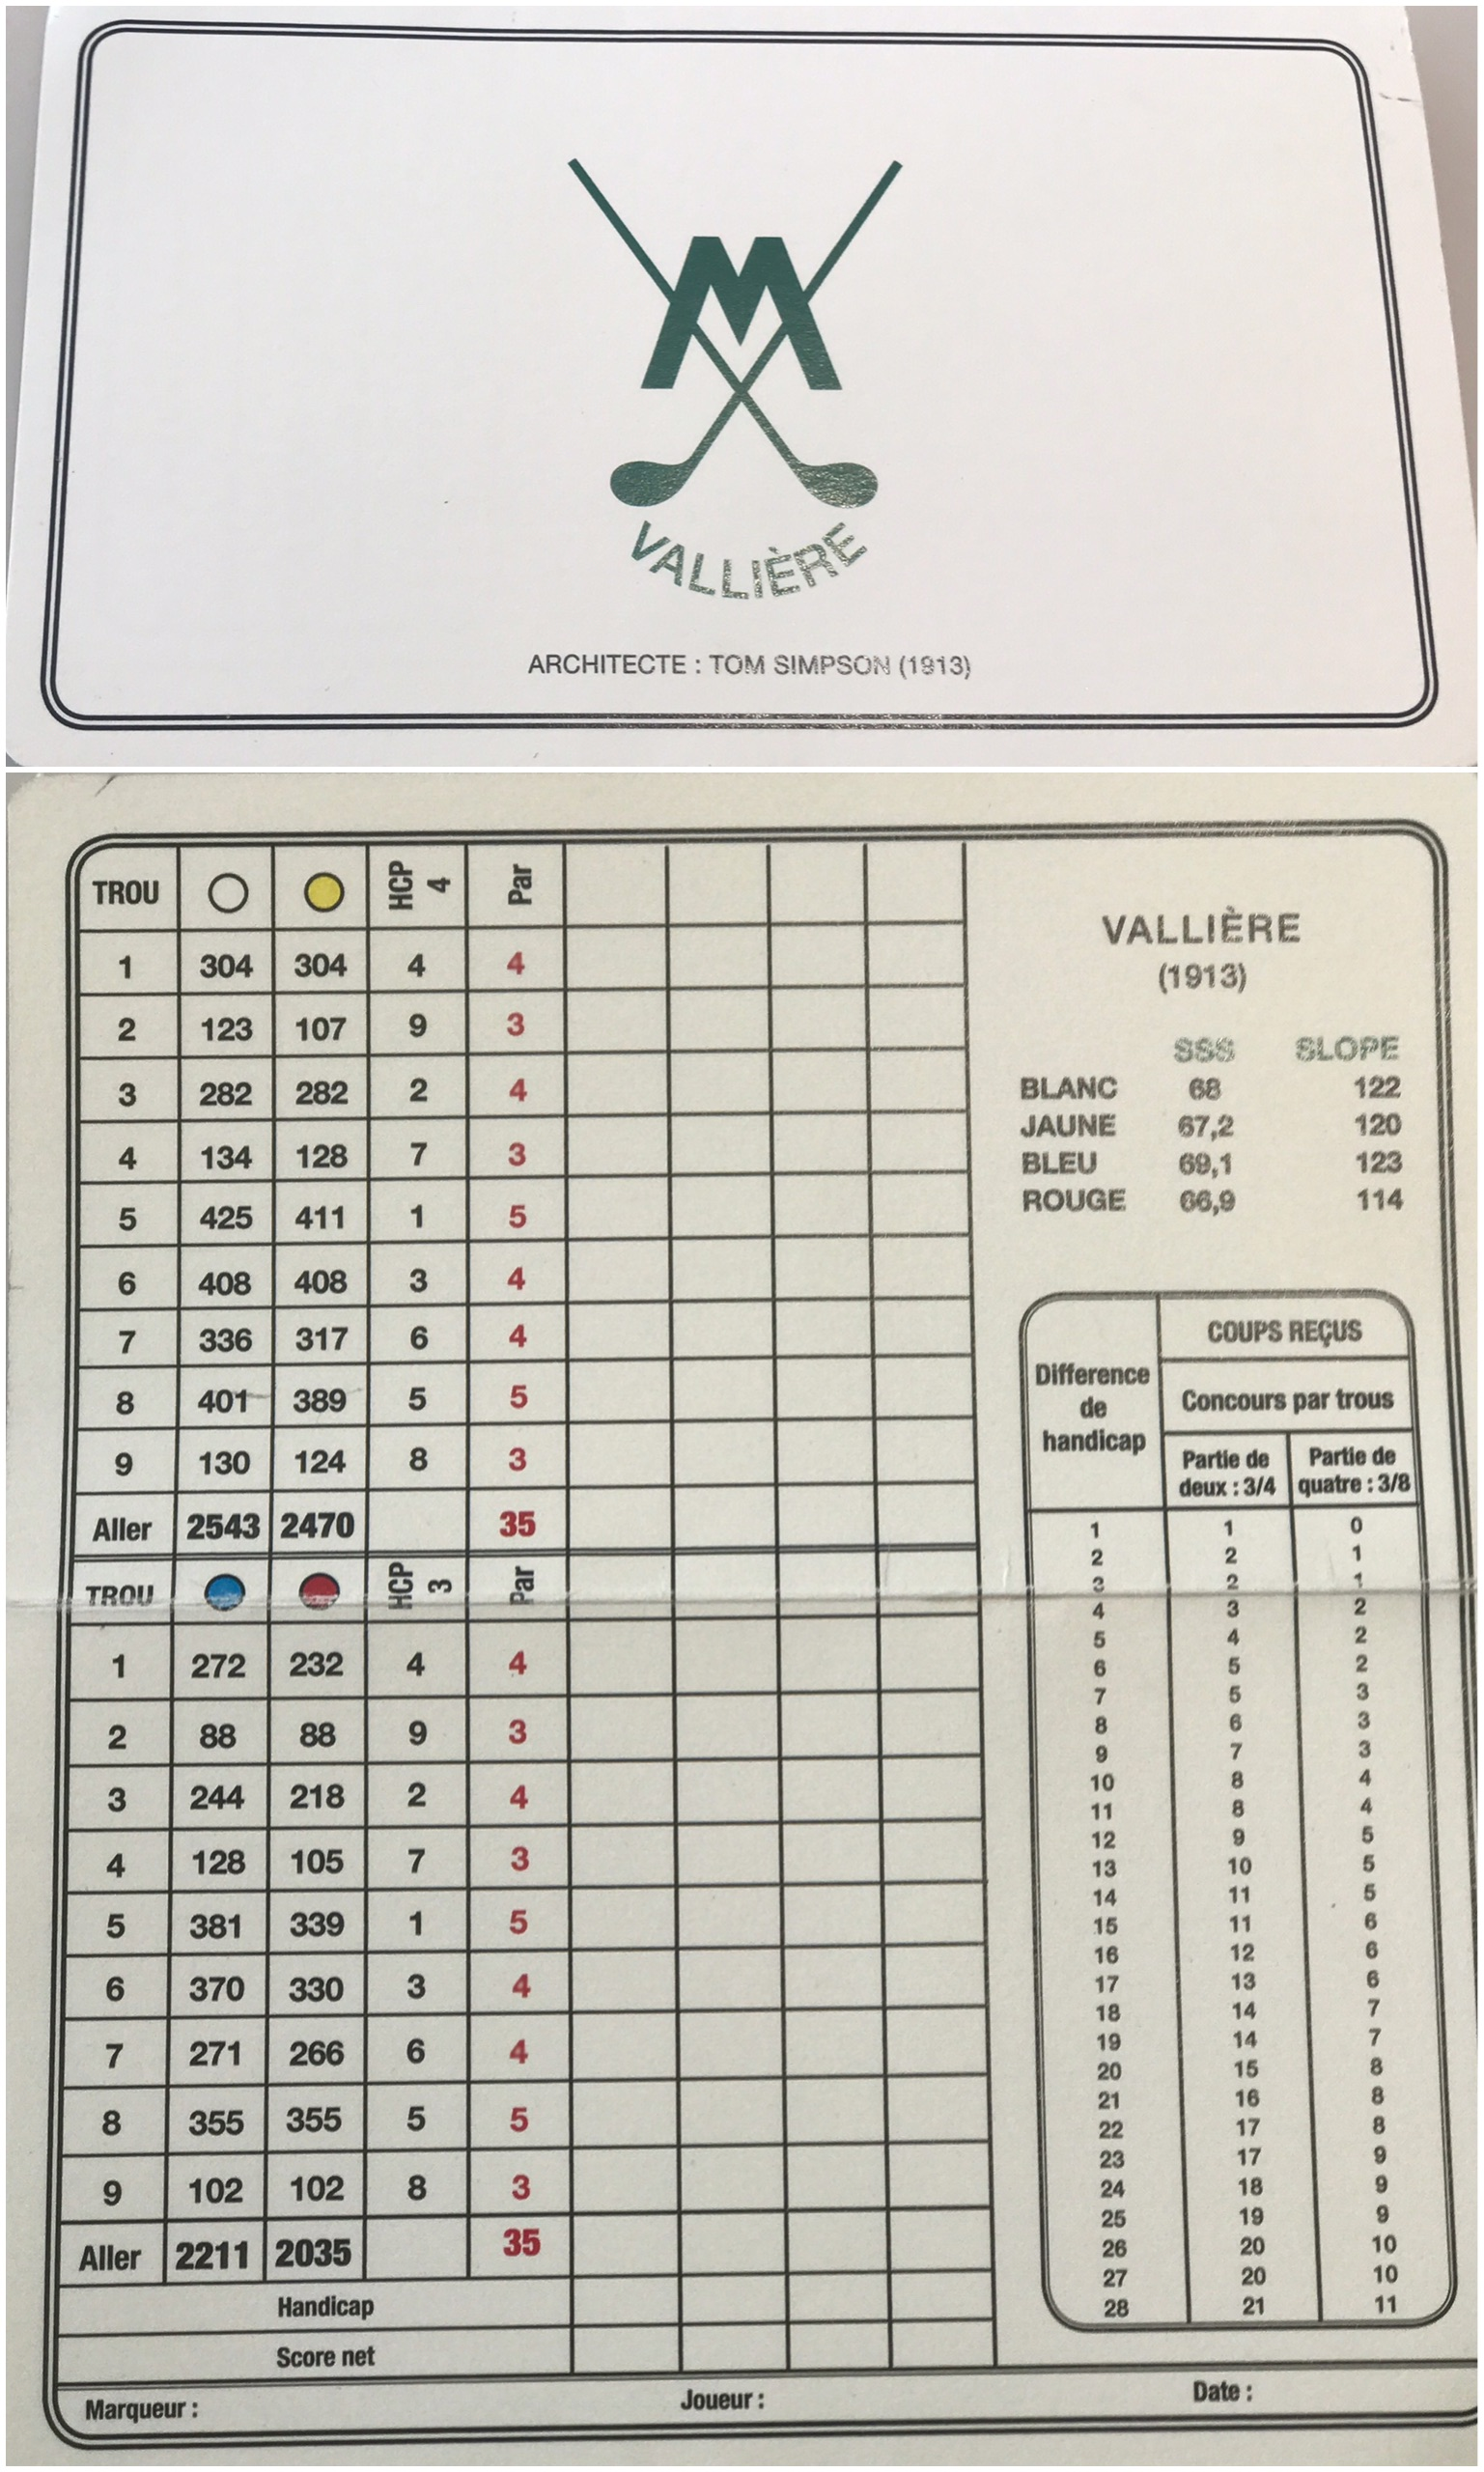 Scorecard for the Valliere course at Morfontaine